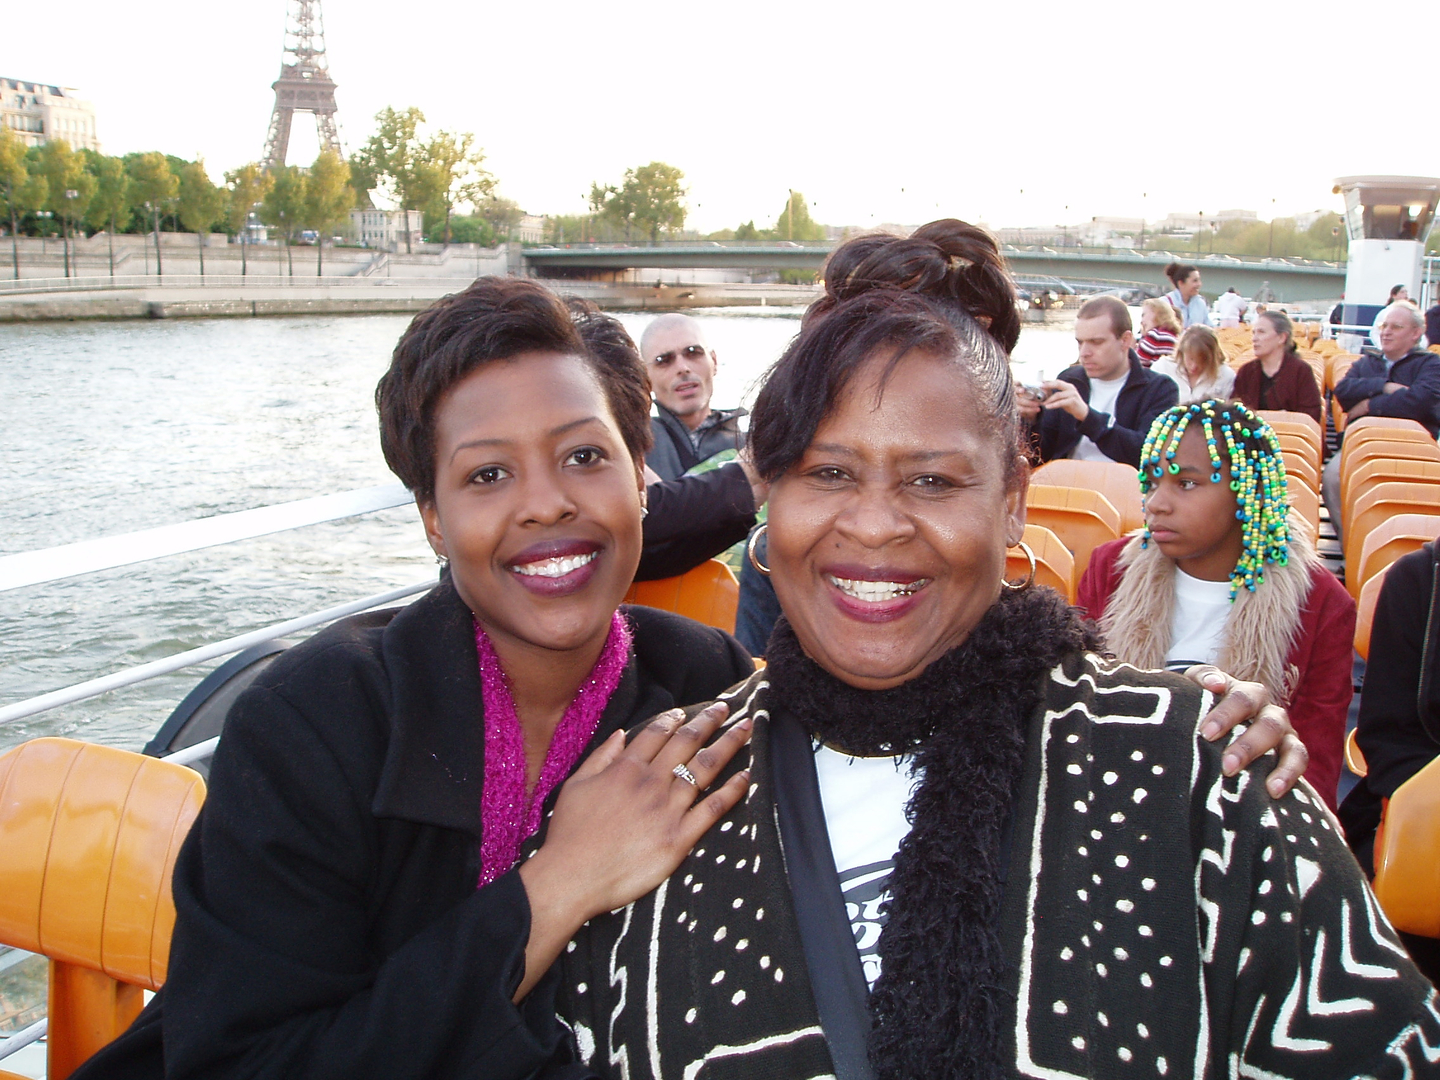 Ch 5- Mom & Karla on Bateaux Mouches